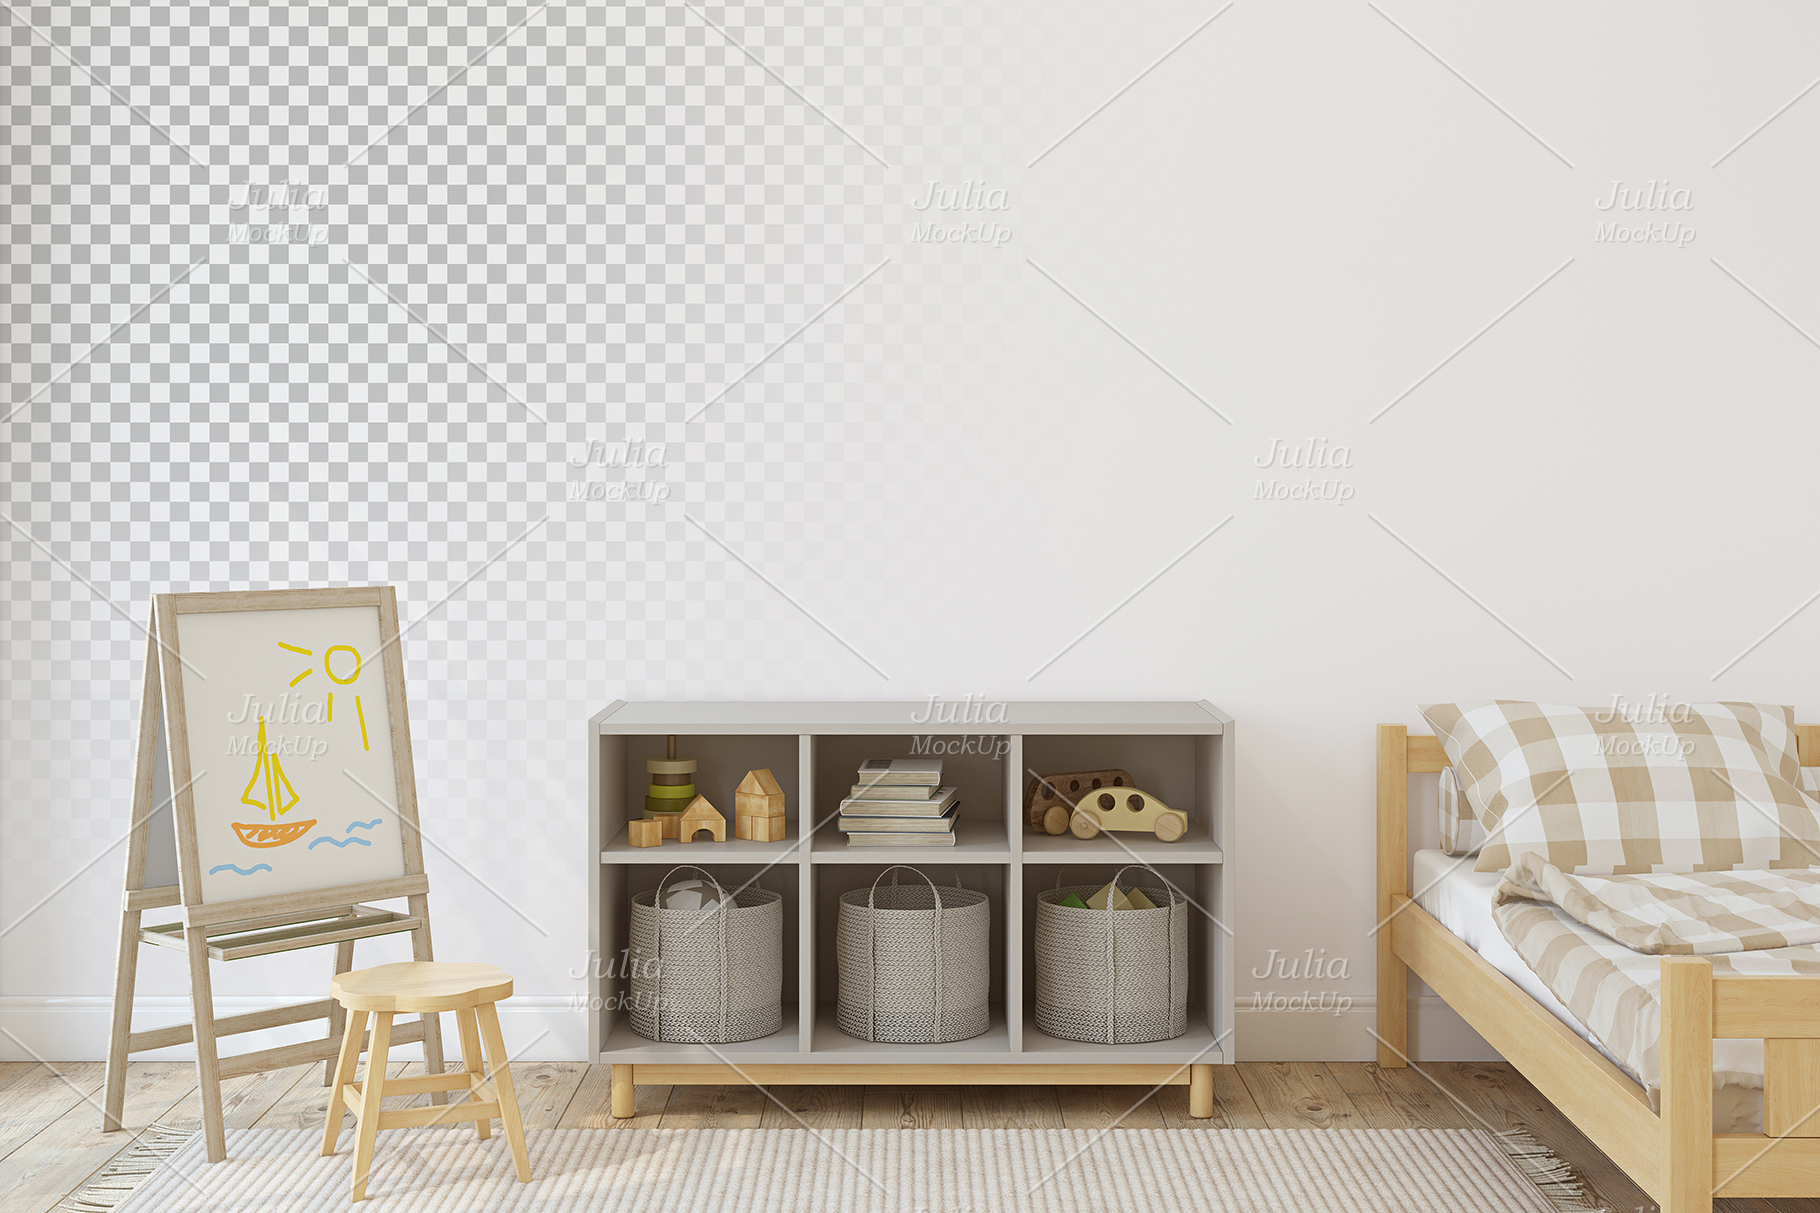 Toddler room. Wall&Frames Mockup. example image 4